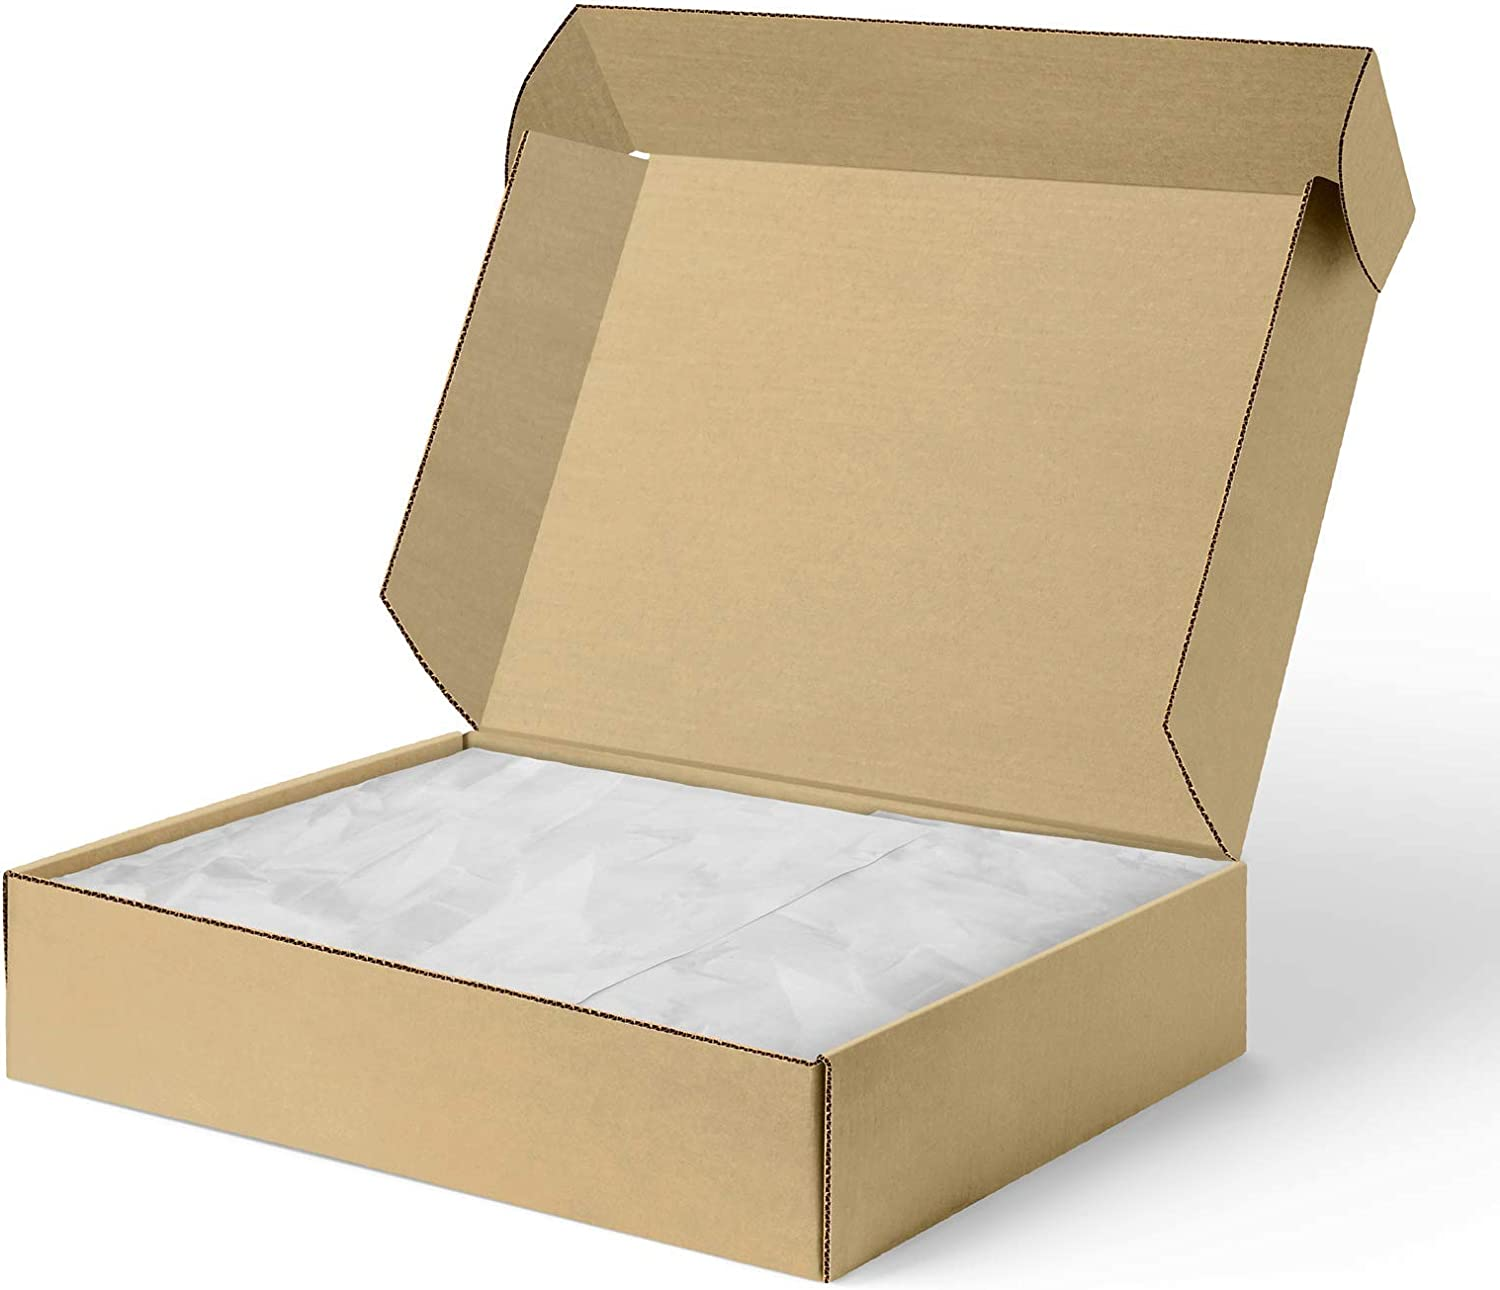 Cardboard Box Literature Mailer(23/×15/×5cm) FDGDFH 9/×6/×2 inches Easy to Mailer in Small Shipping Boxes Set of 25